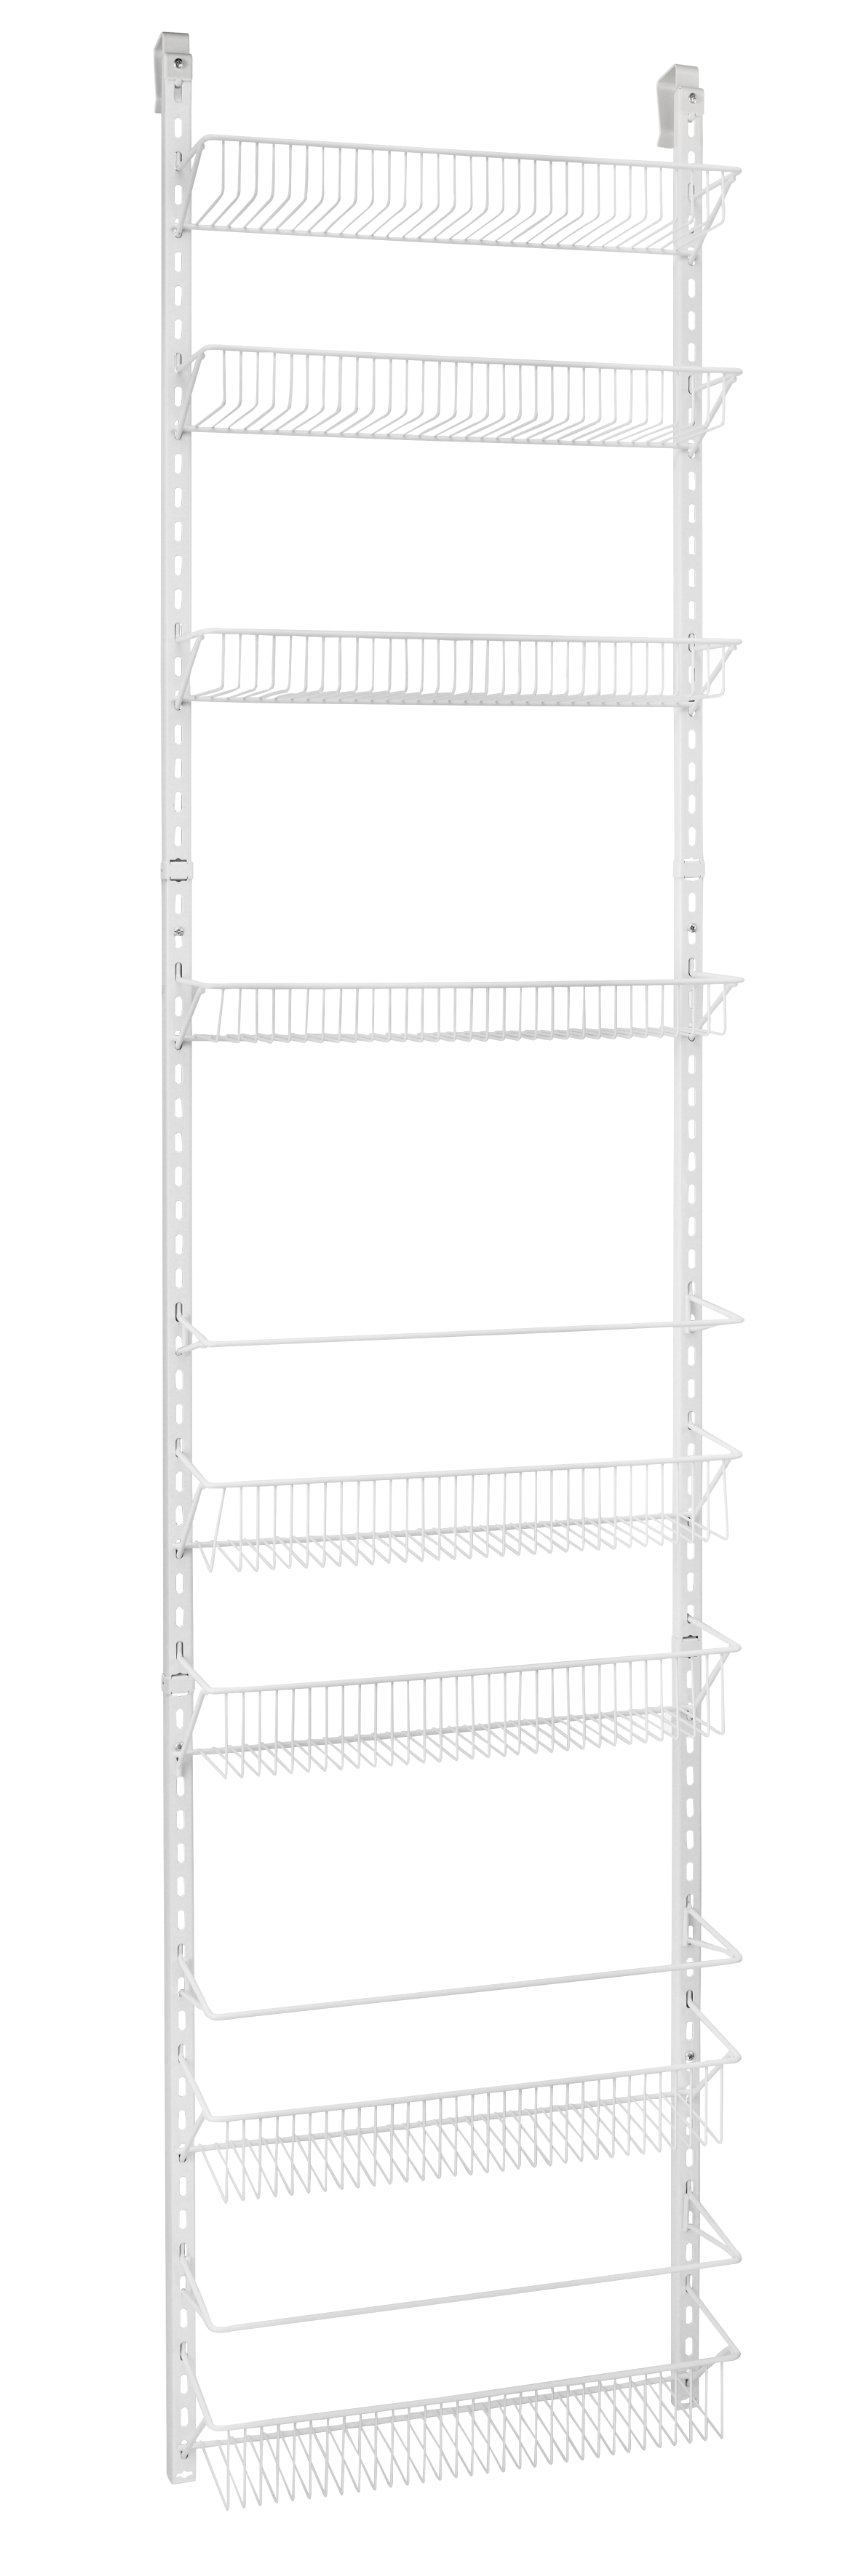 ClosetMaid 1233 Adjustable 8-Tier Wall and Door Rack, 76-Inch Height X 18-Inch Wide by ClosetMaid